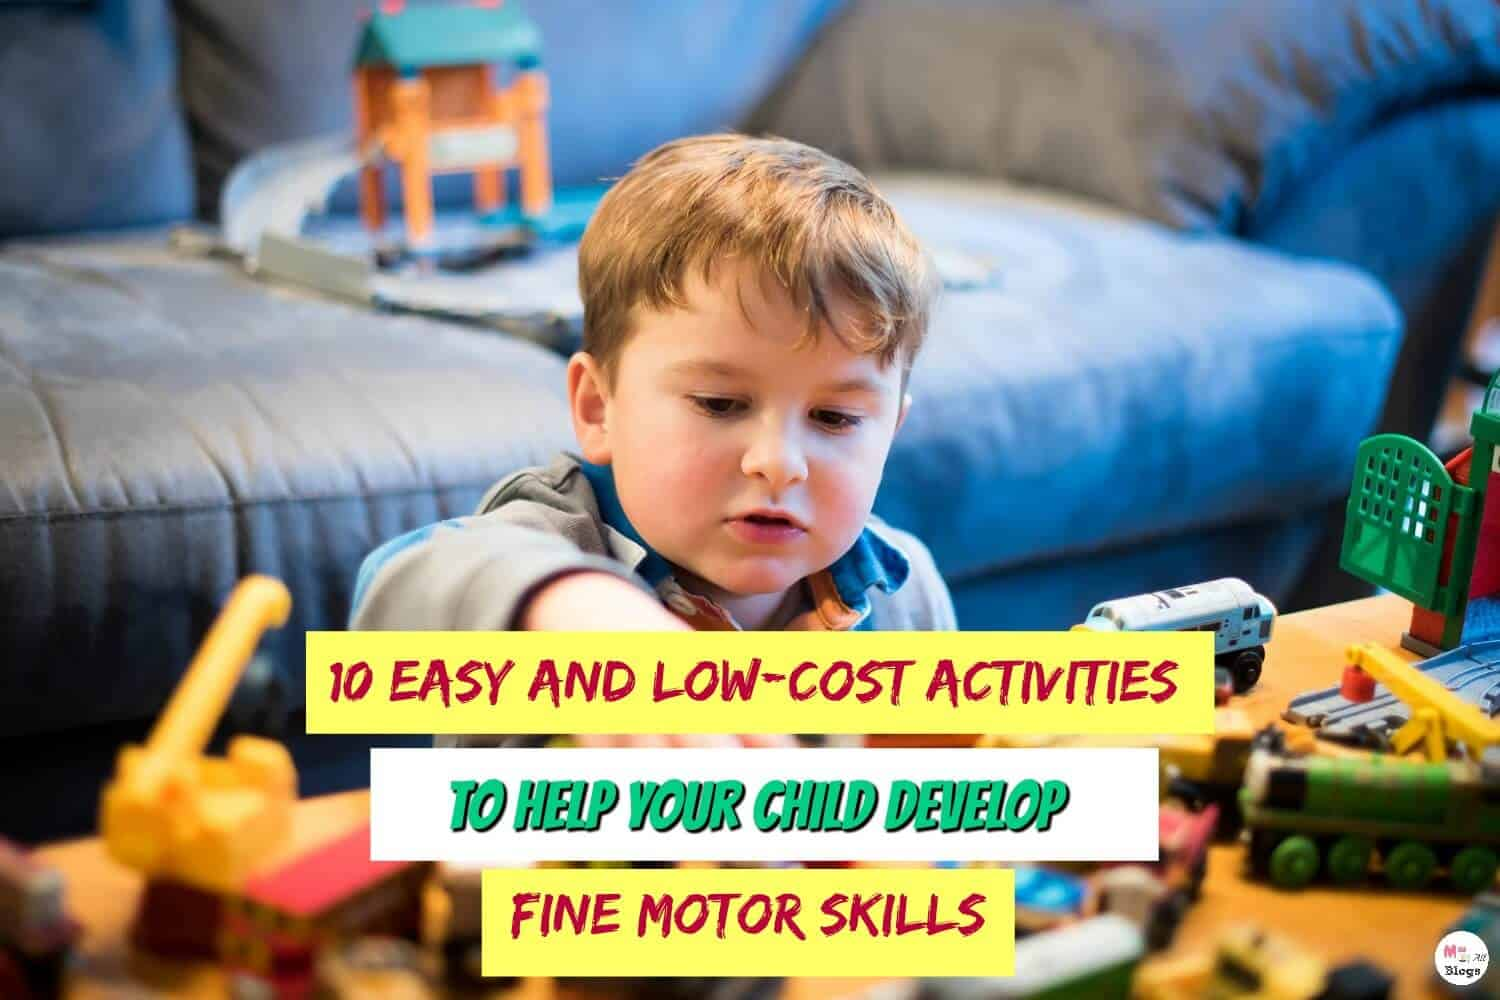 Activities To Help Your Child Develop Fine Motor Skills